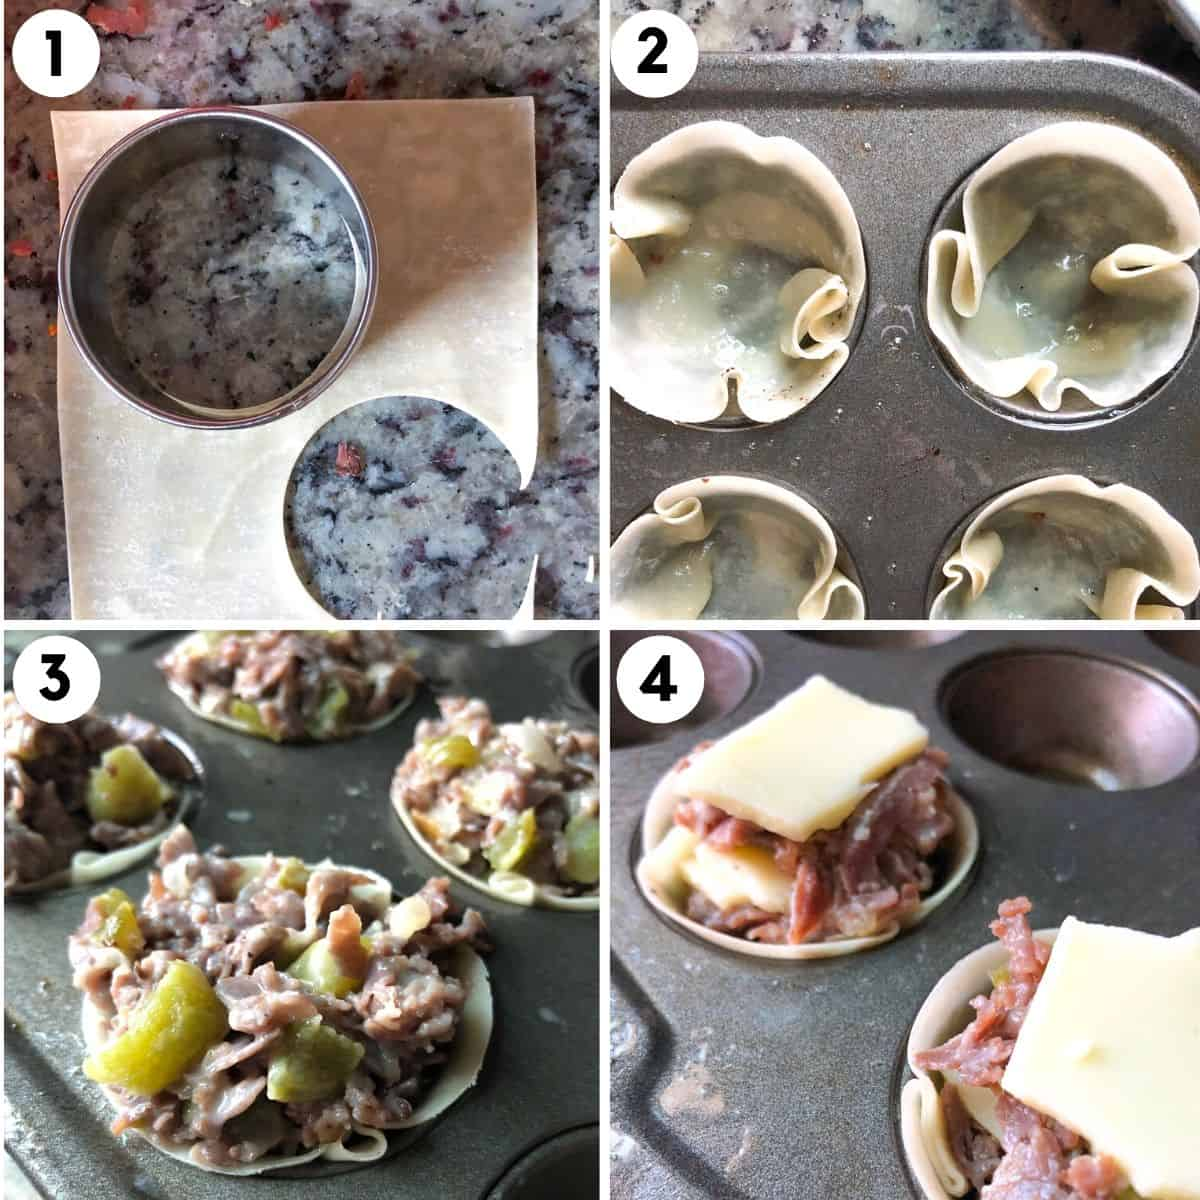 Steps for how to make cheesesteak wonton cups using a mini muffin tin.